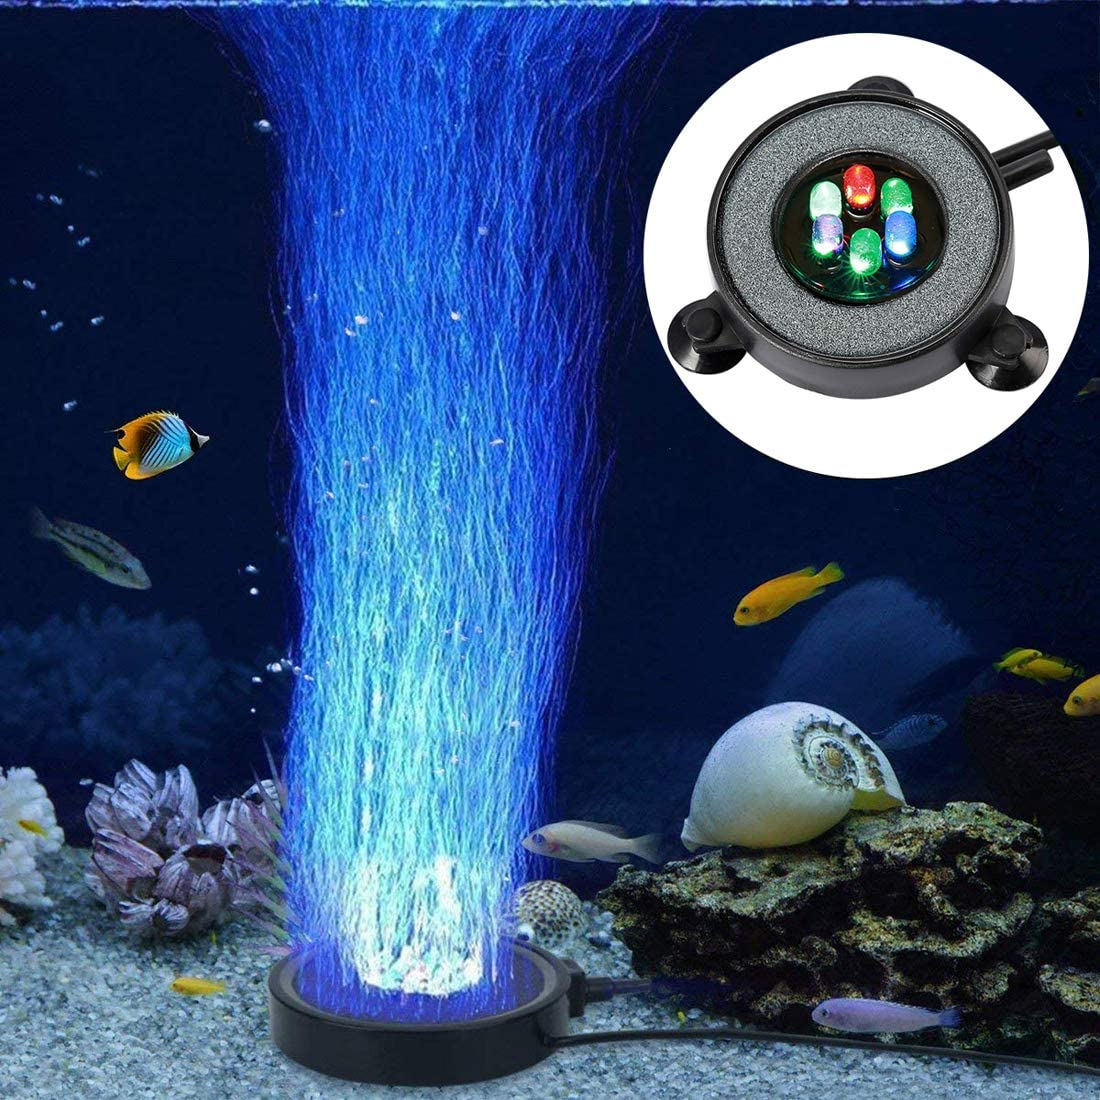 LED Aquarium Air Stones Fish Tank Bubbler Light Air Stone Diffuser Decor Lamp with Sucker Colorful Backgound Lighting (5.5cm/ 2.16inch)